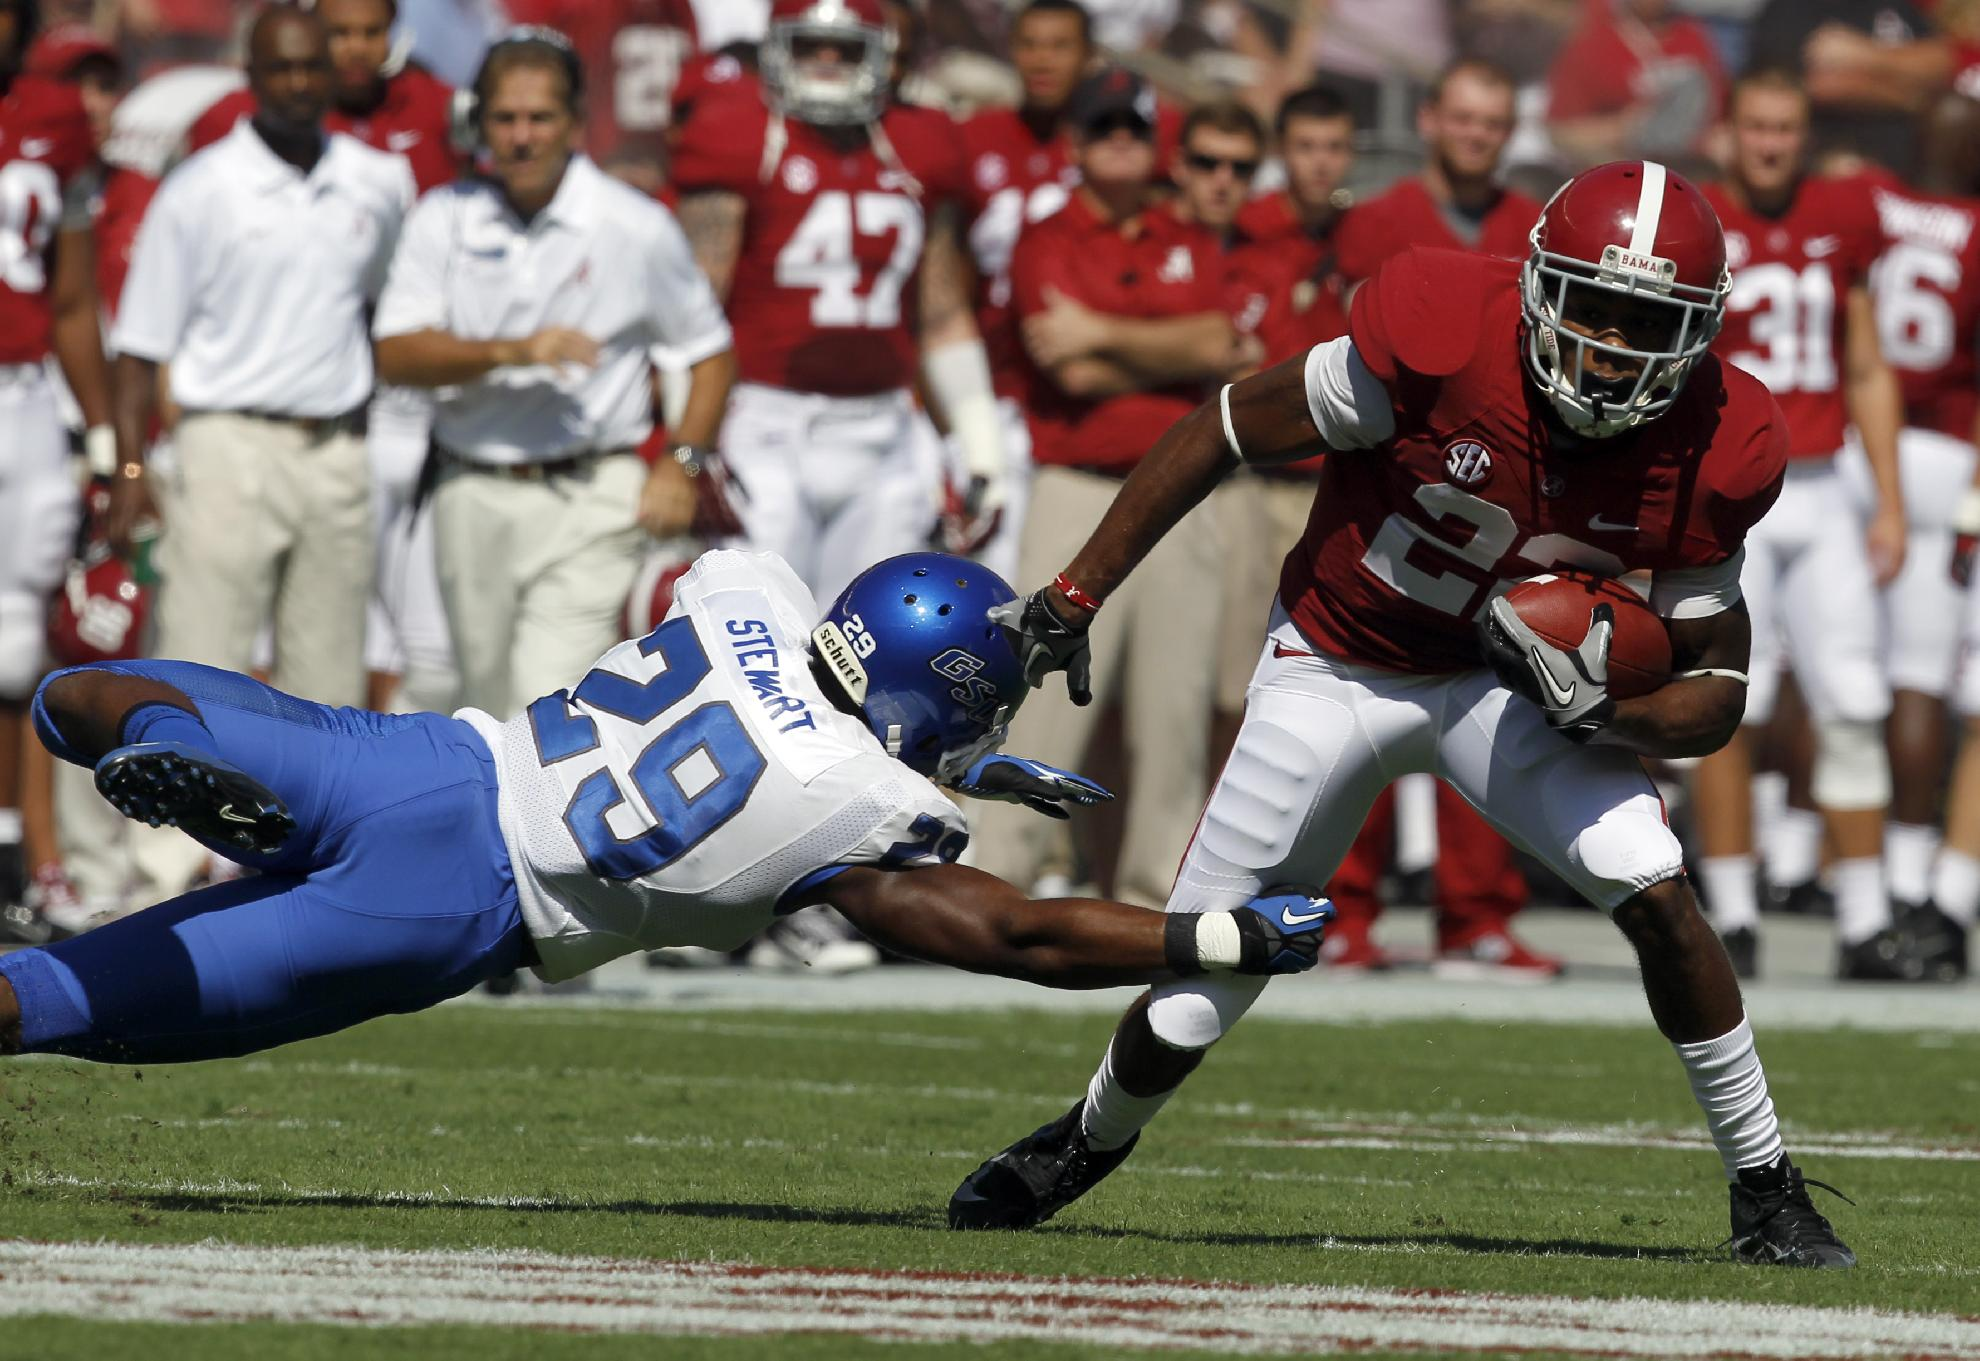 Alabama wide receiver Christion Jones (22) catches a pass and eludes the tackle of Georgia State safety Rashad Stewart (29) for a first down during the first half of an NCAA college football game on Saturday, Oct. 5, 2013, in Tuscaloosa, Ala